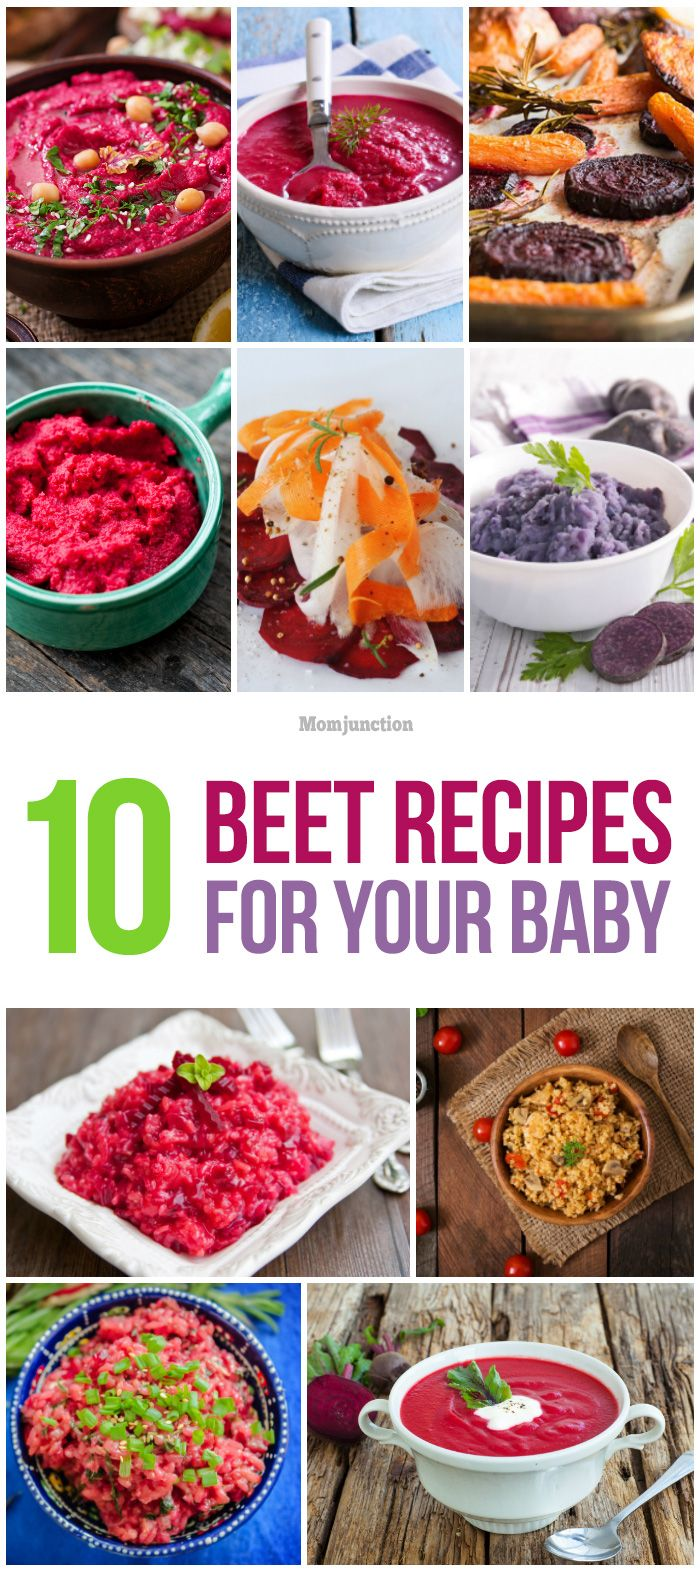 Beetroots are one of the best food choices to make for your little one at this time and MomJunction tells you about the goodness of beetroot for babies. We have also included a few simple beet recipes for your baby.